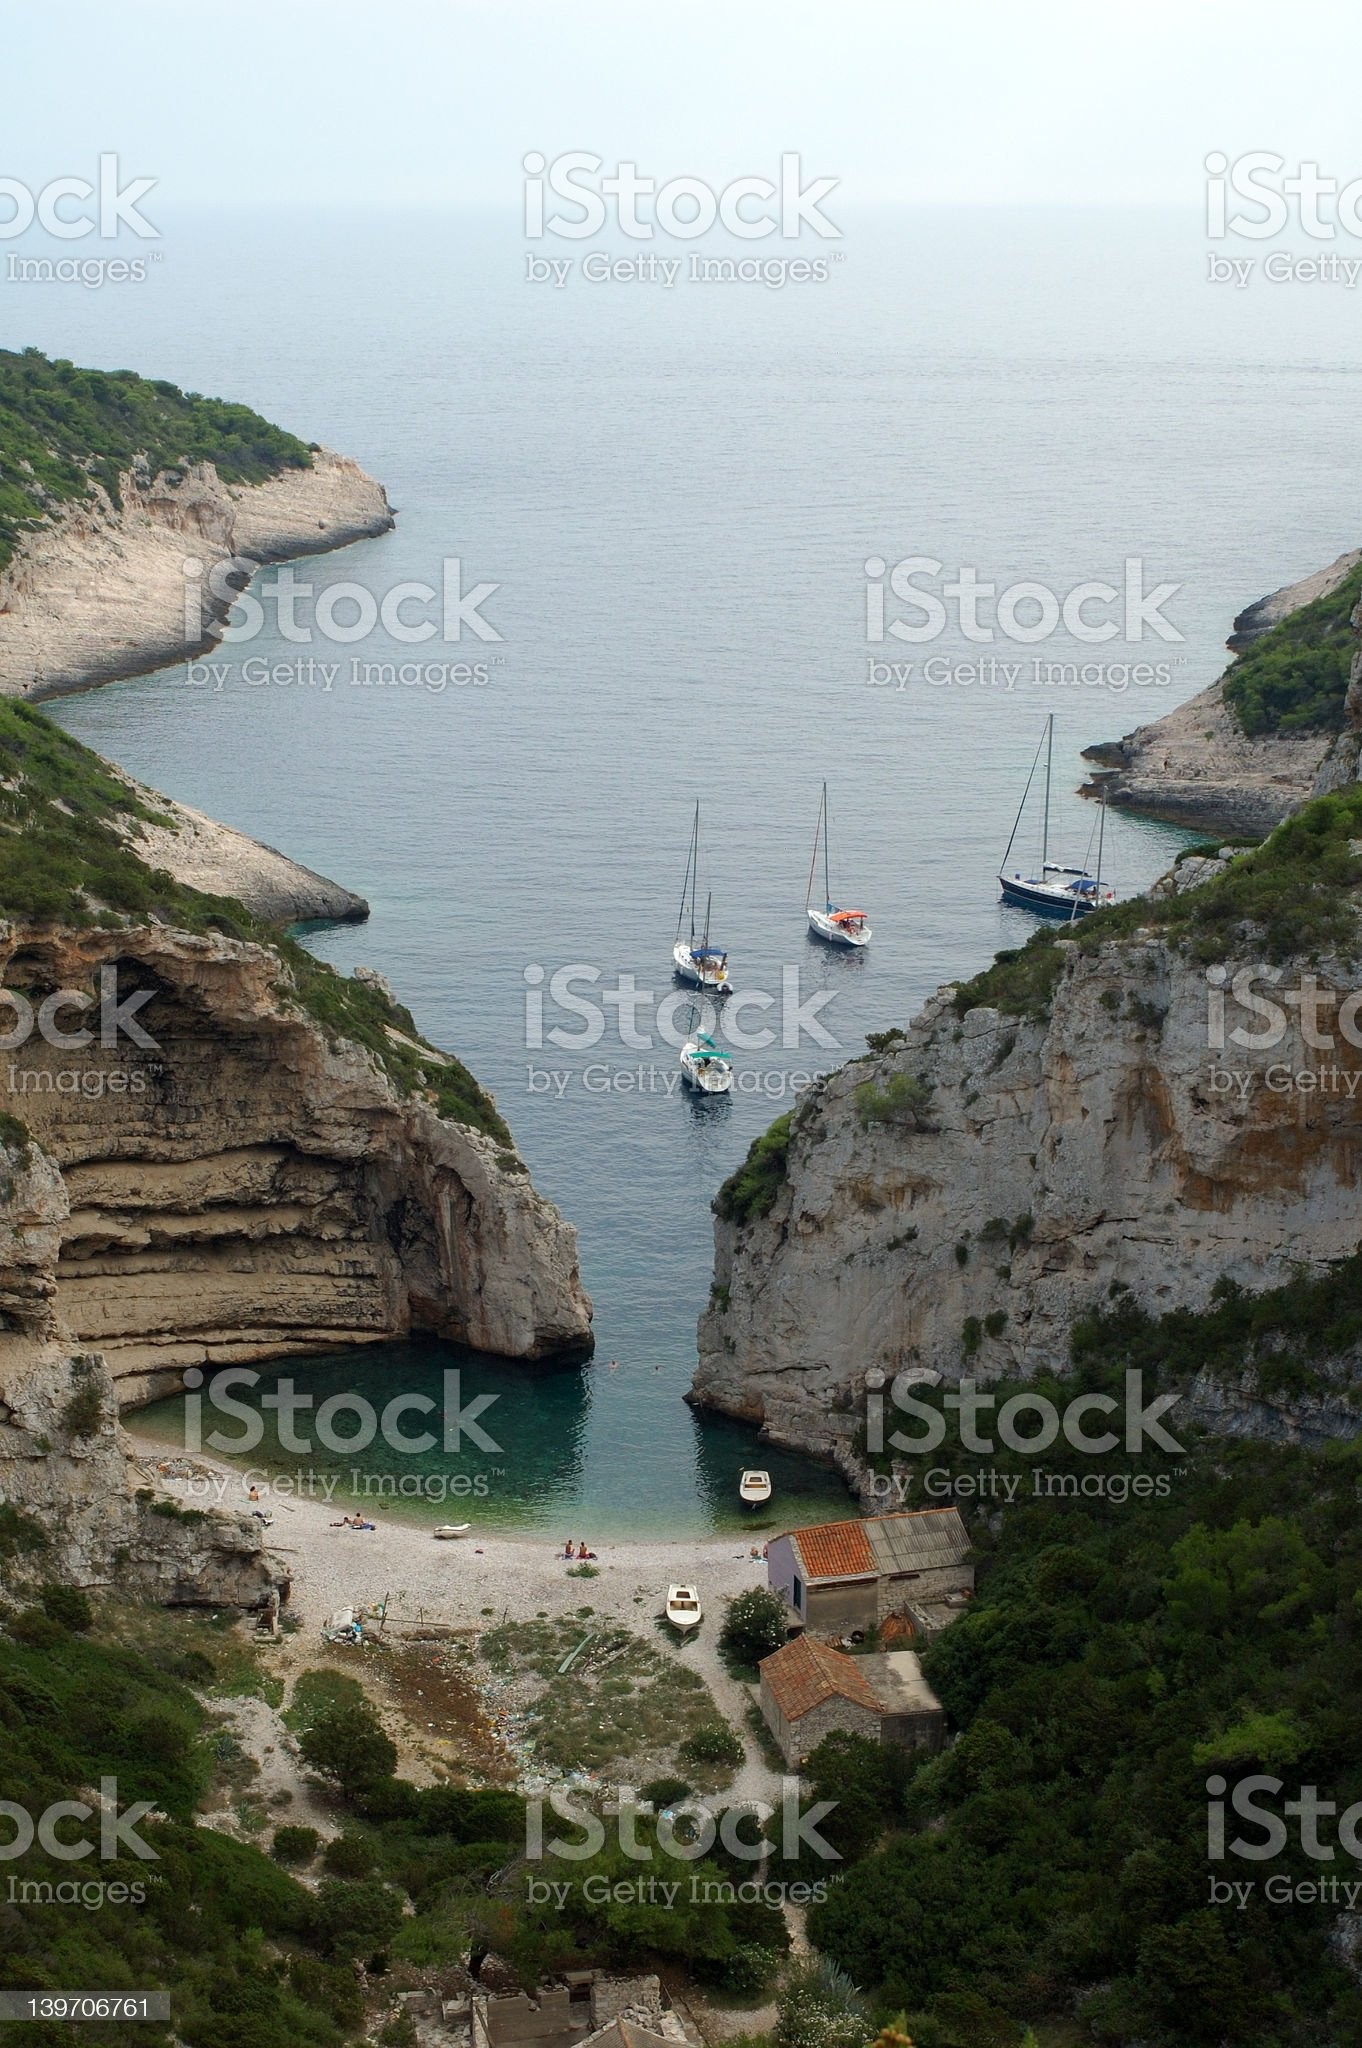 Stirna Luka cove, Croatia royalty-free stock photo